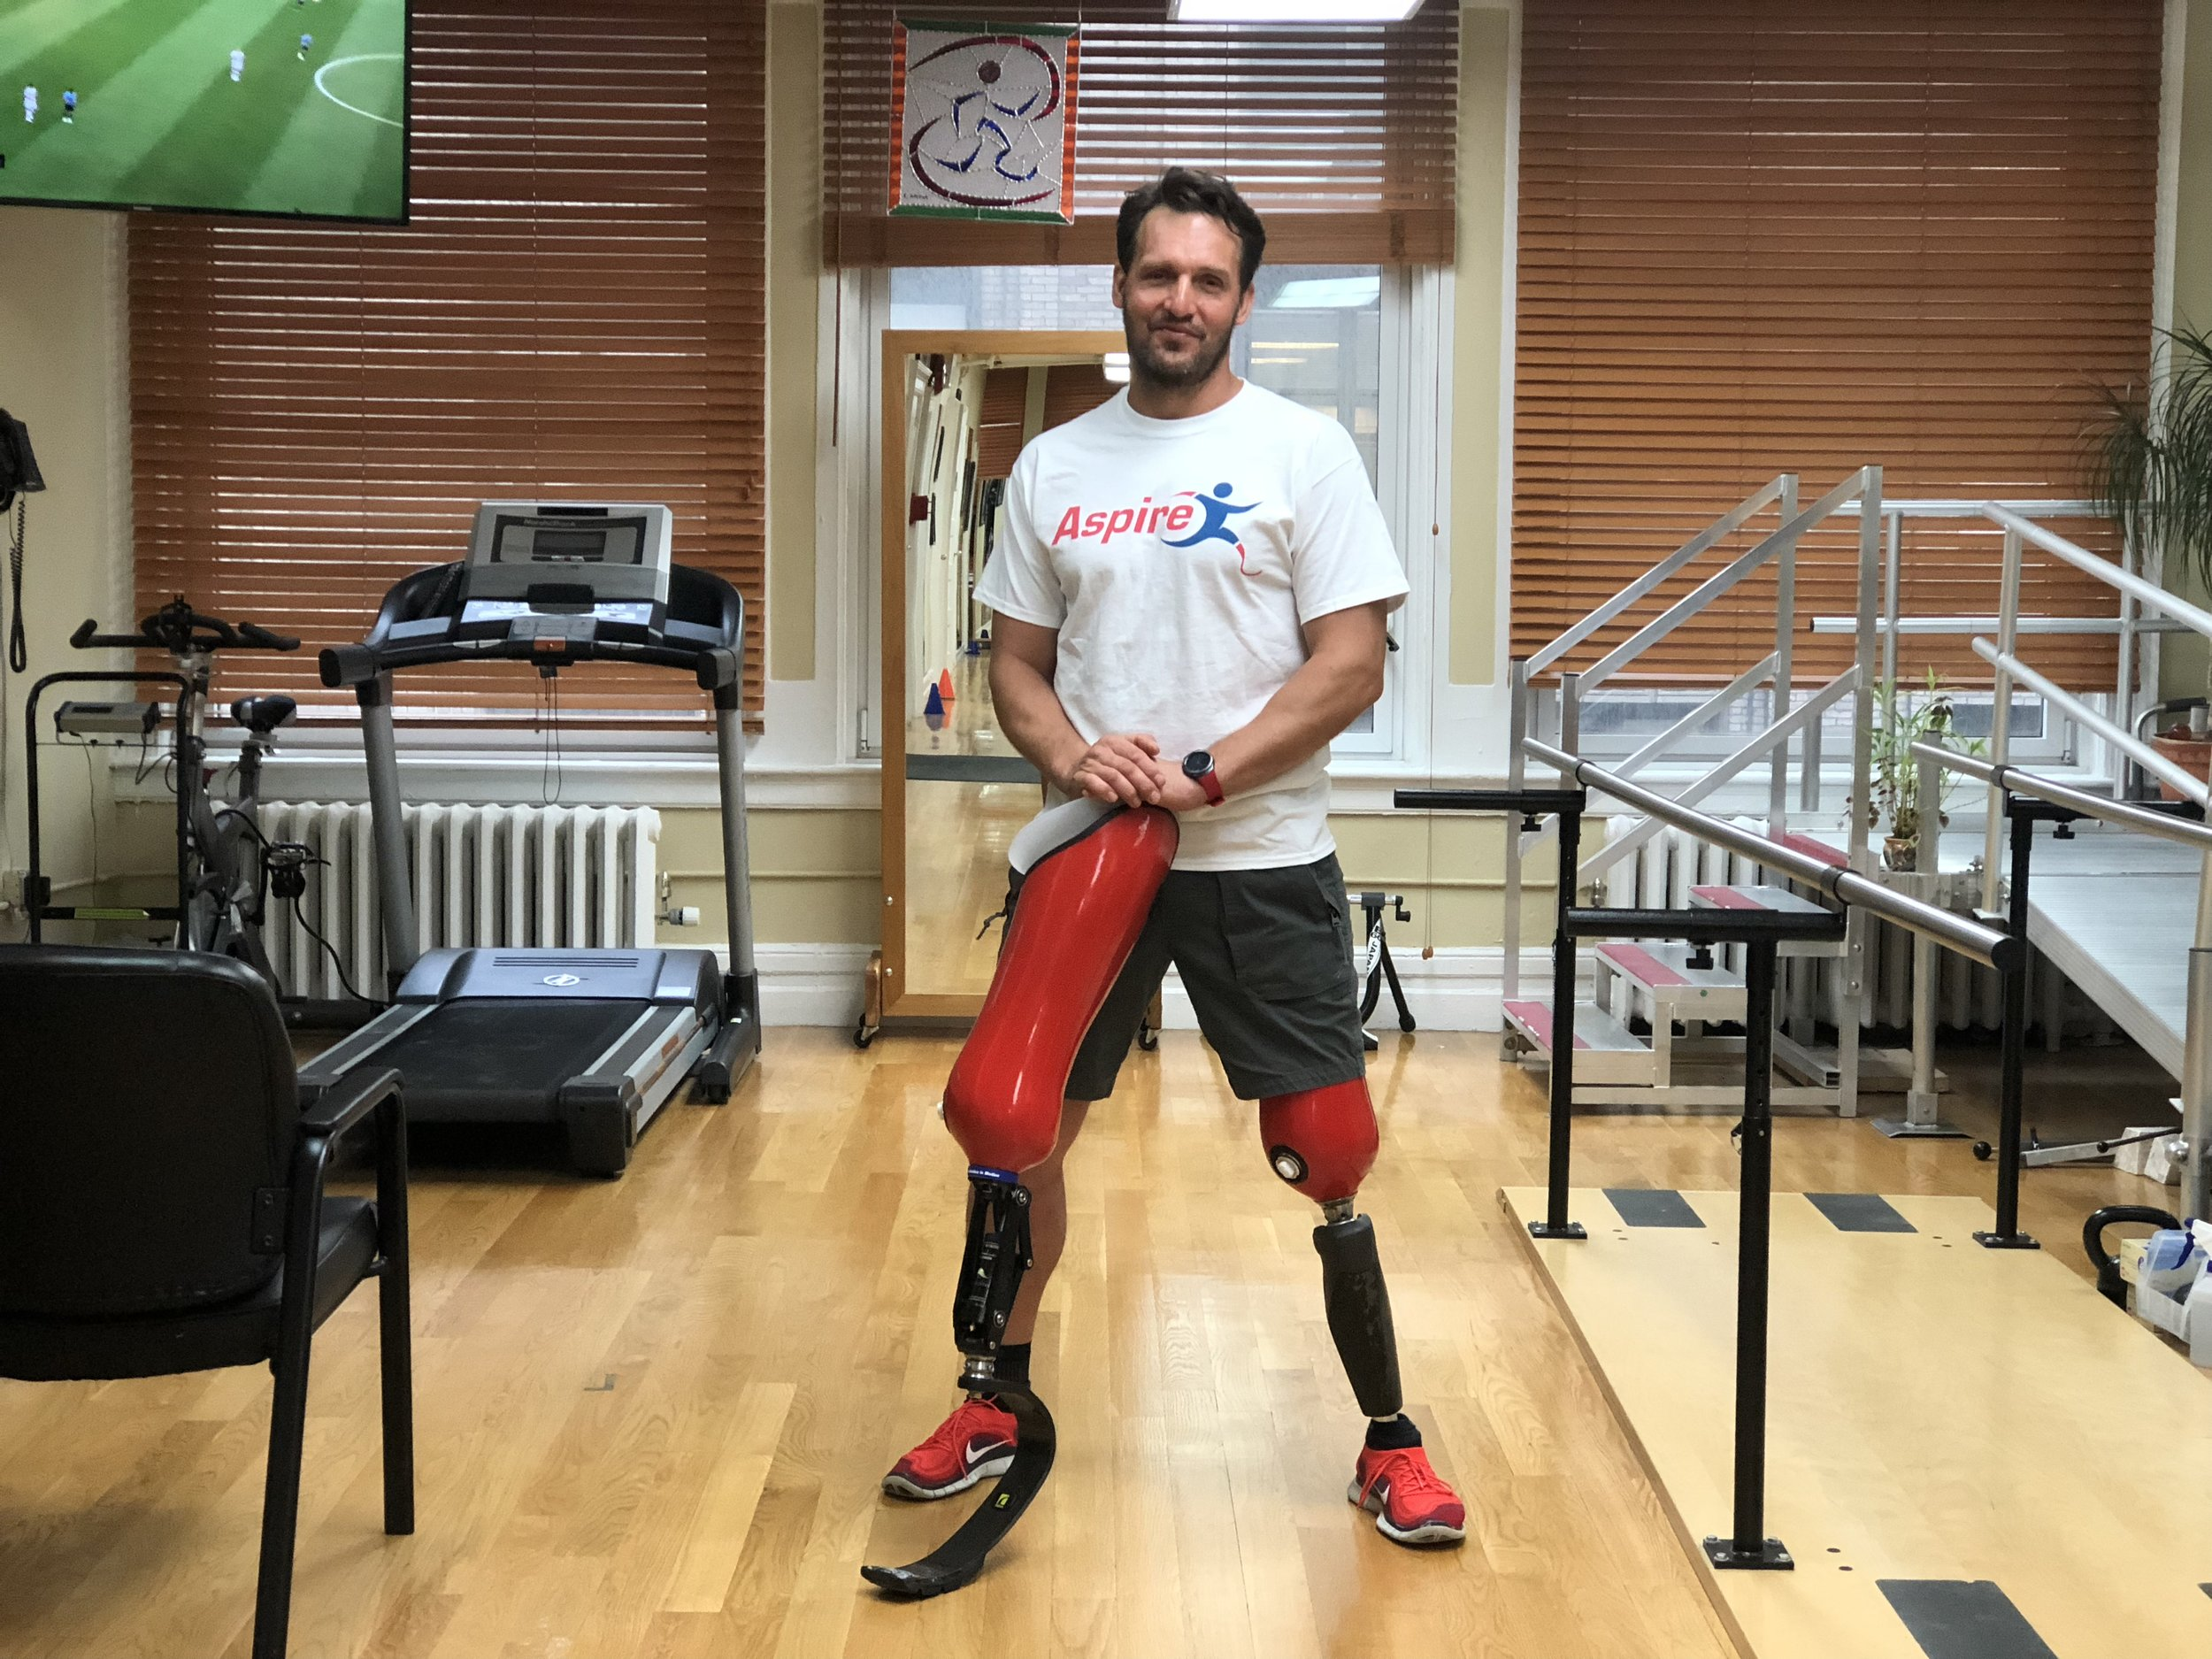 Tomasz - Tomasz became an amputee in 2016 from a car accident. We have provided him with his everyday walking and running prostheses. Tomasz has completed 15 marathons and 17 half marathons.